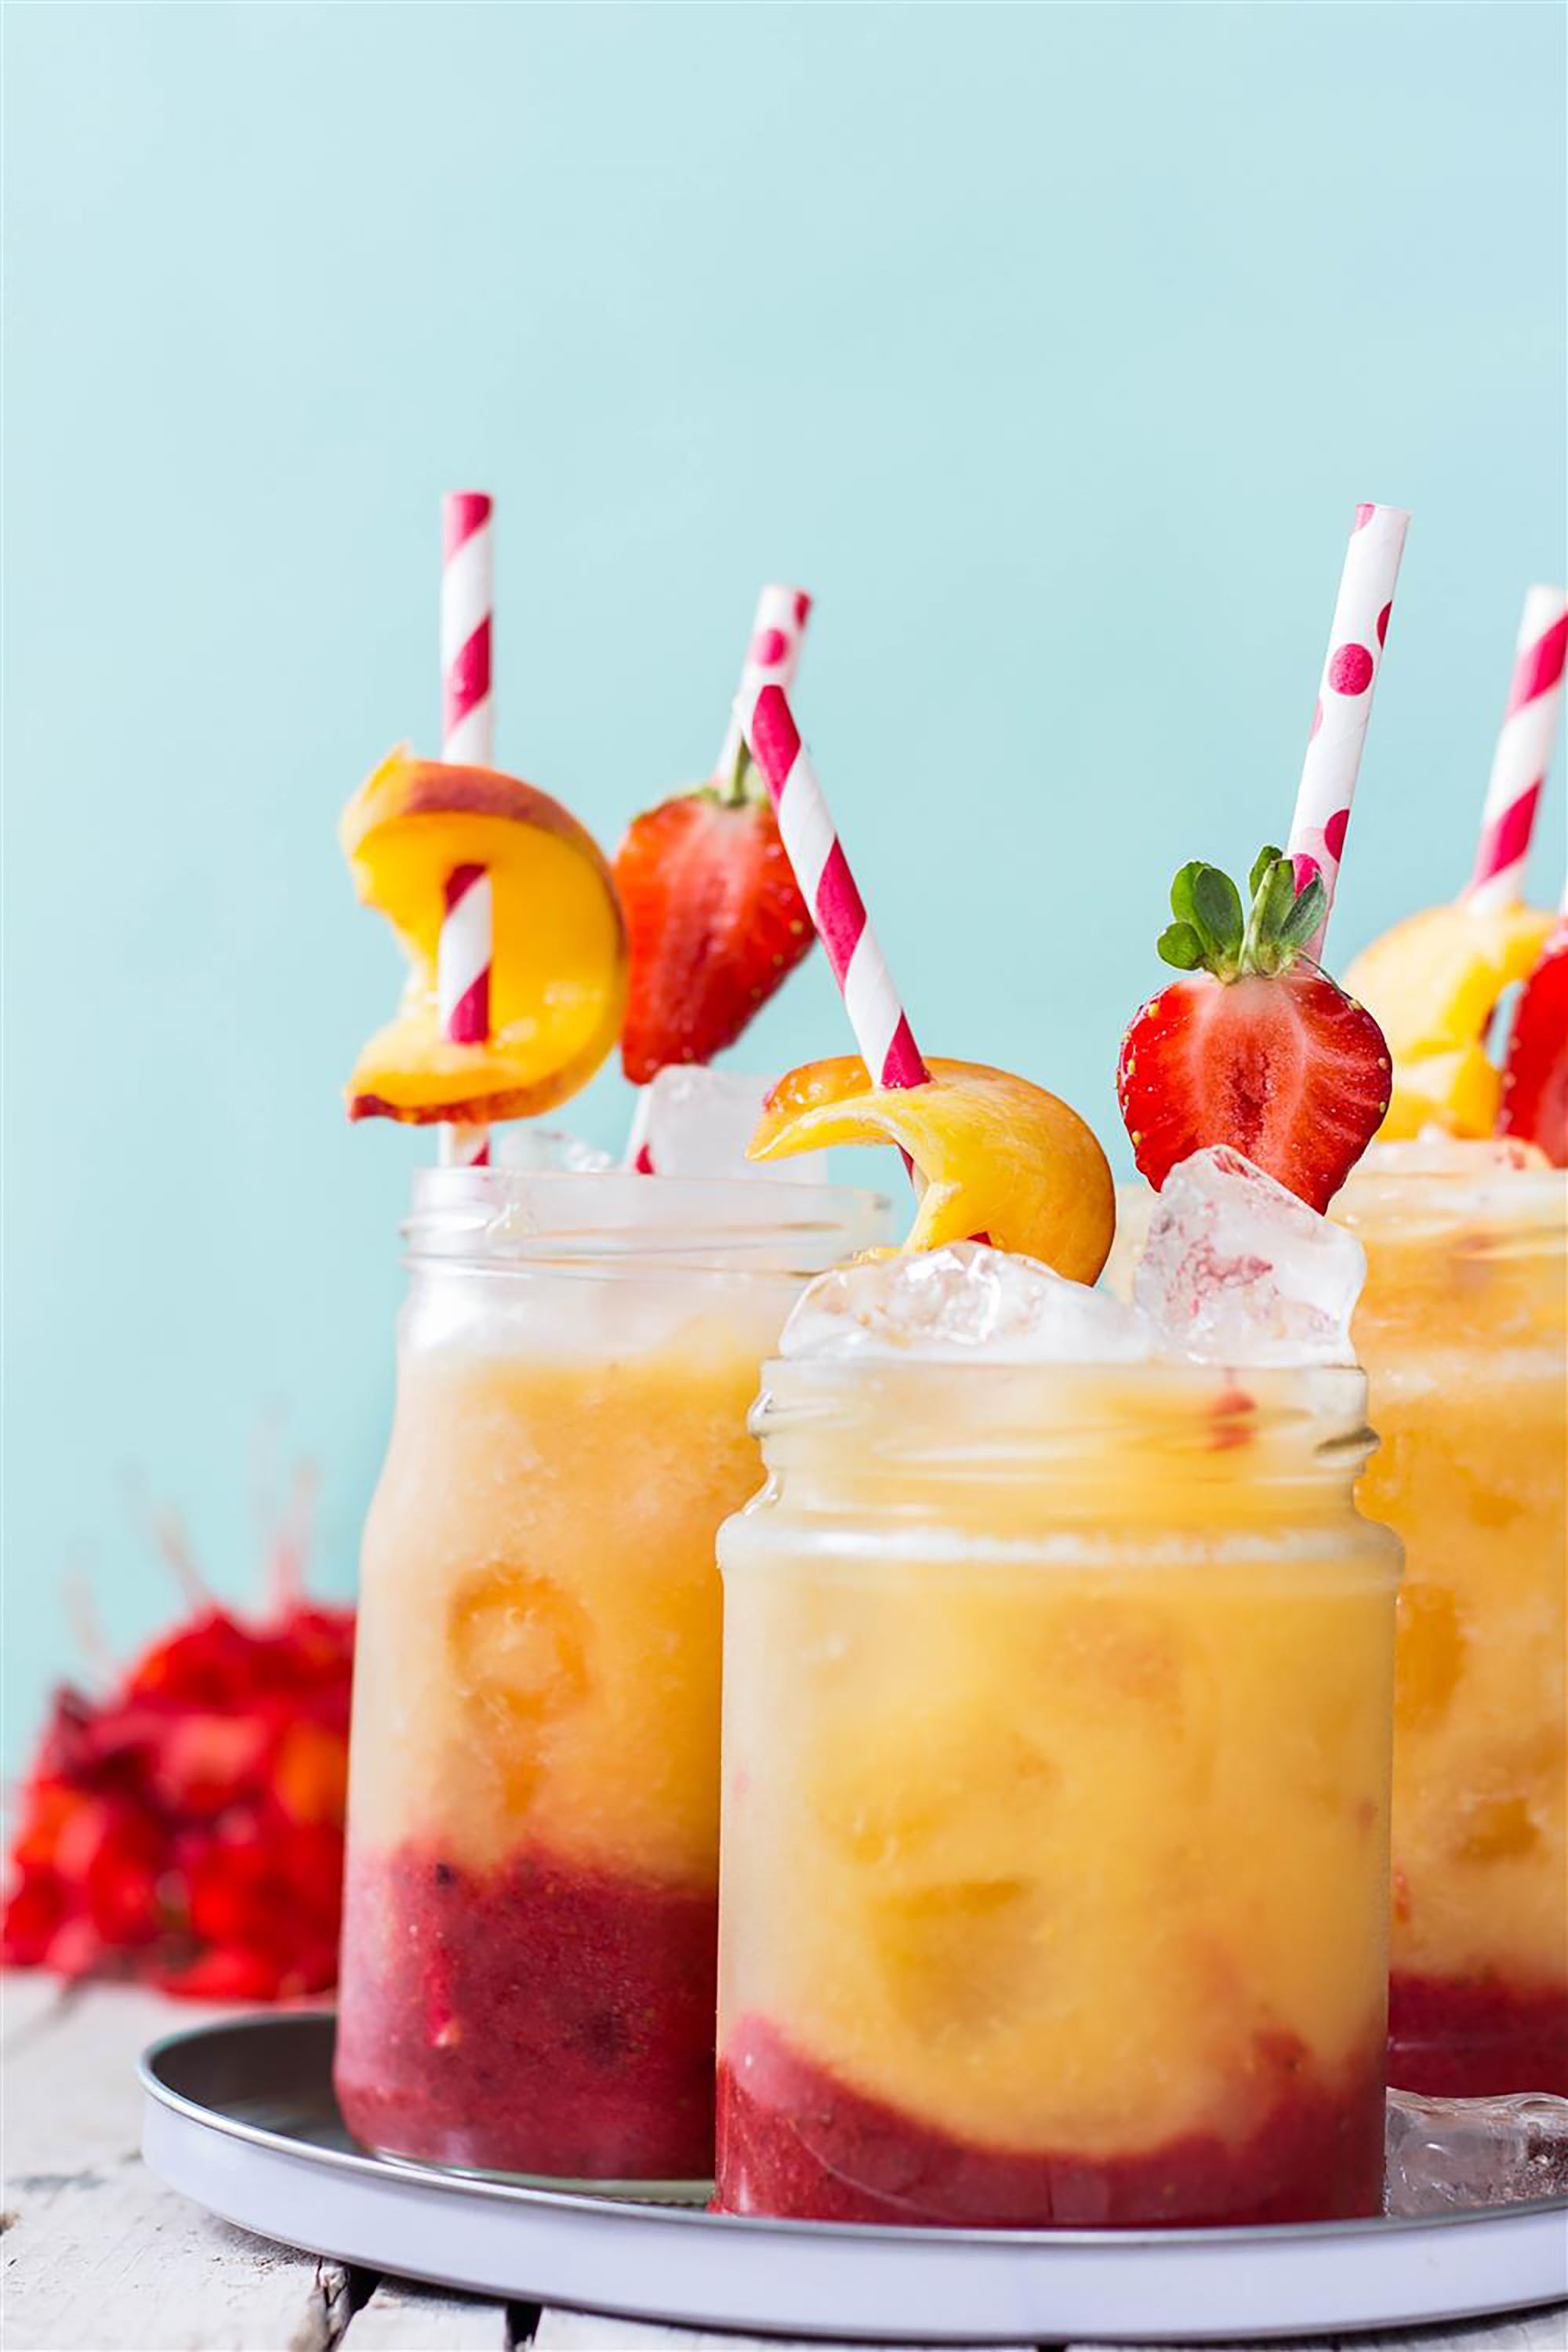 Best Non-Alcoholic Summer Drinks - Best Summer Drink Recipes